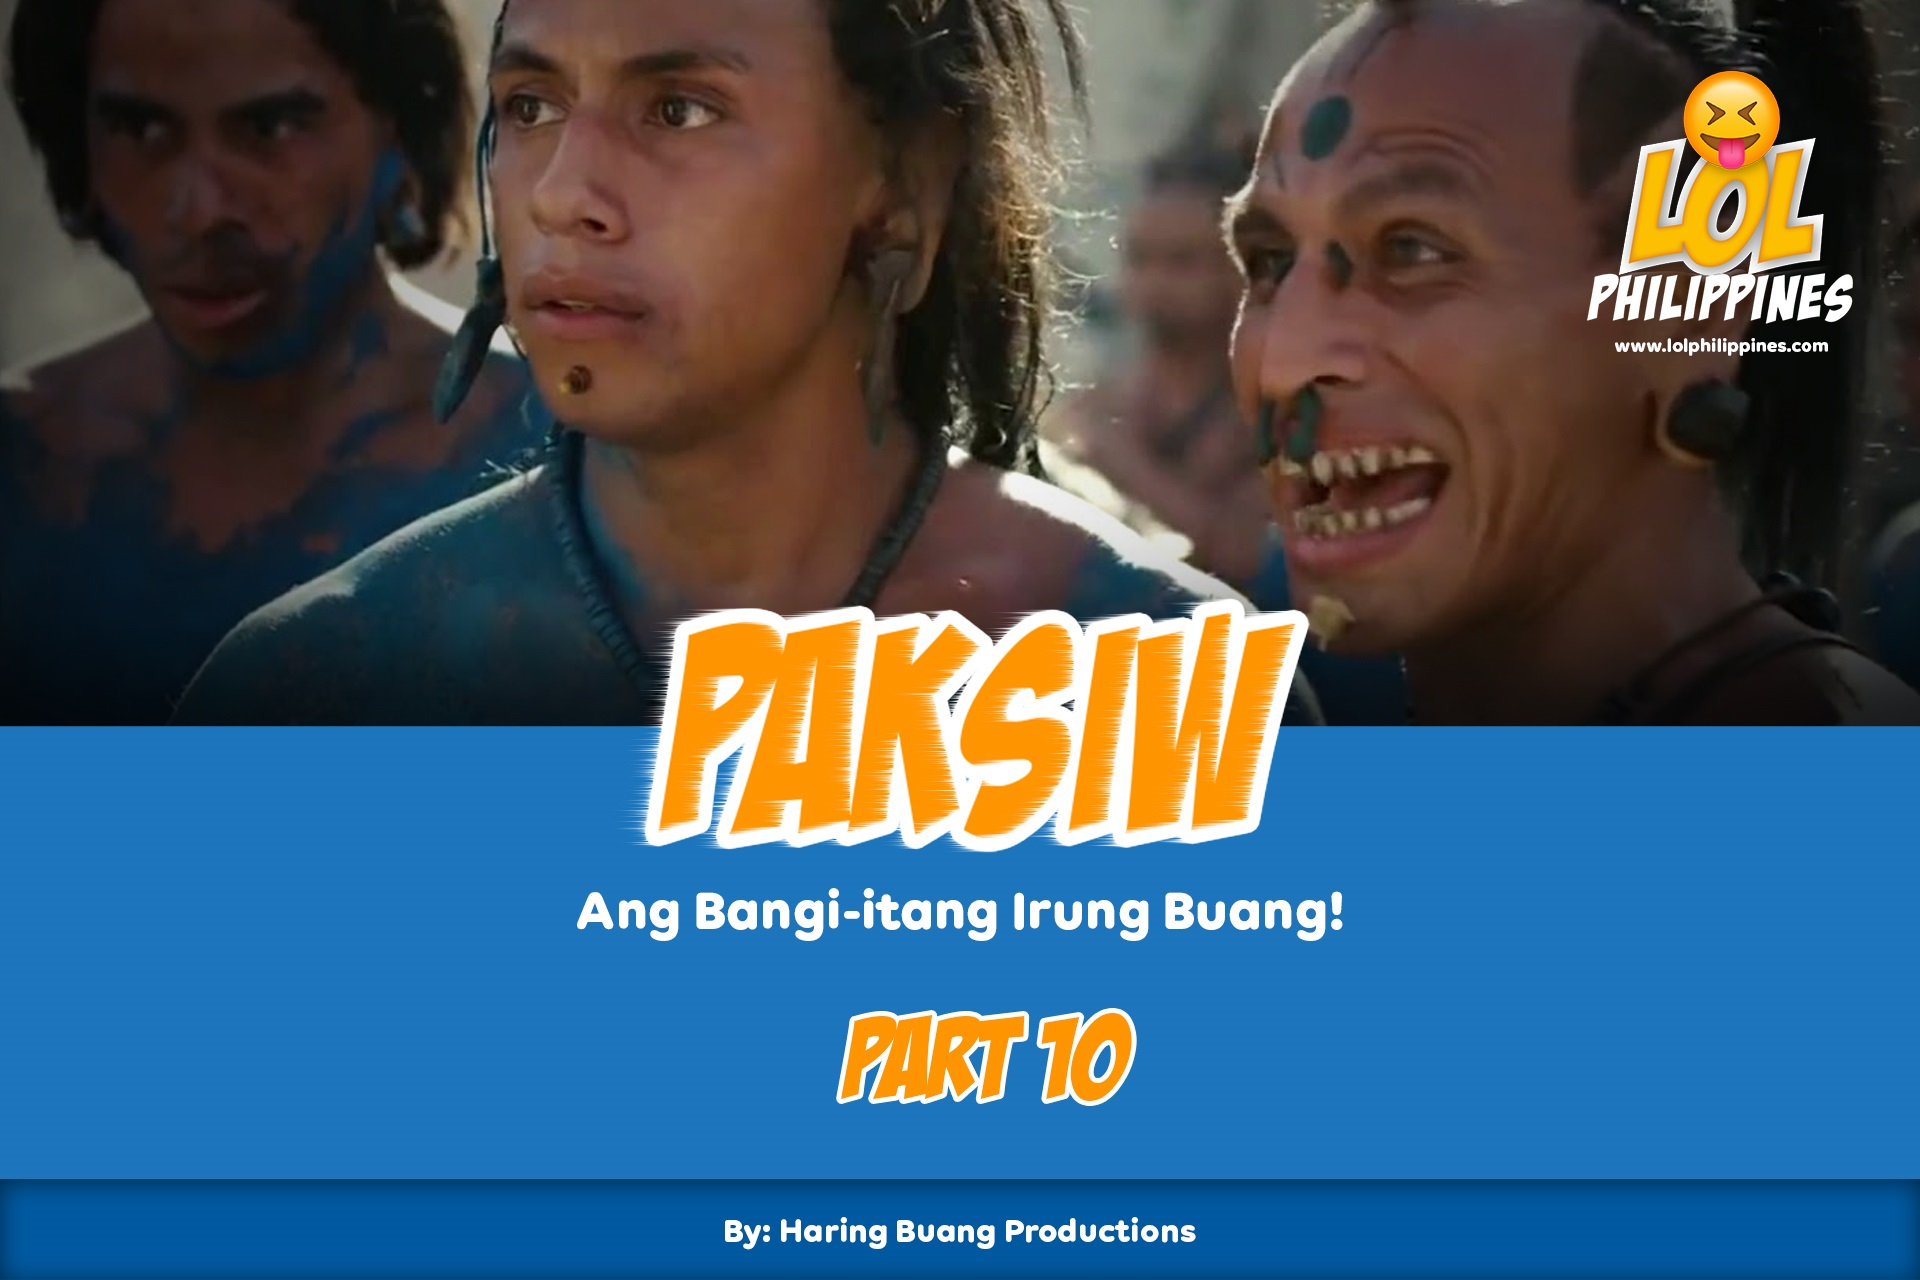 LOL Philippines Paksiw Part 10 Last